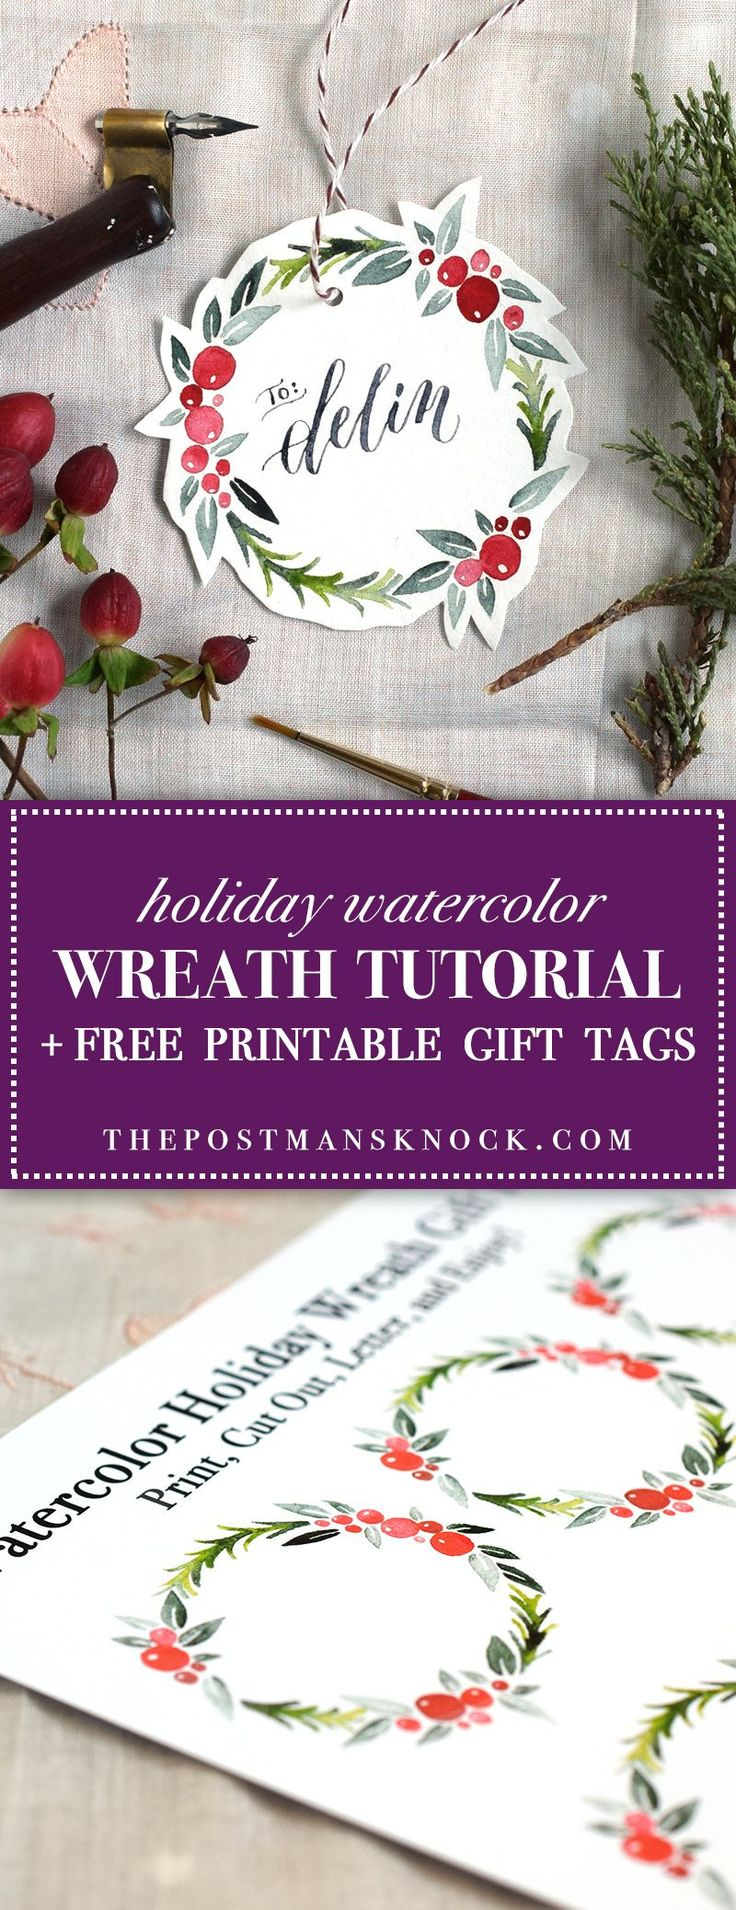 Watercolor wreath tutorial